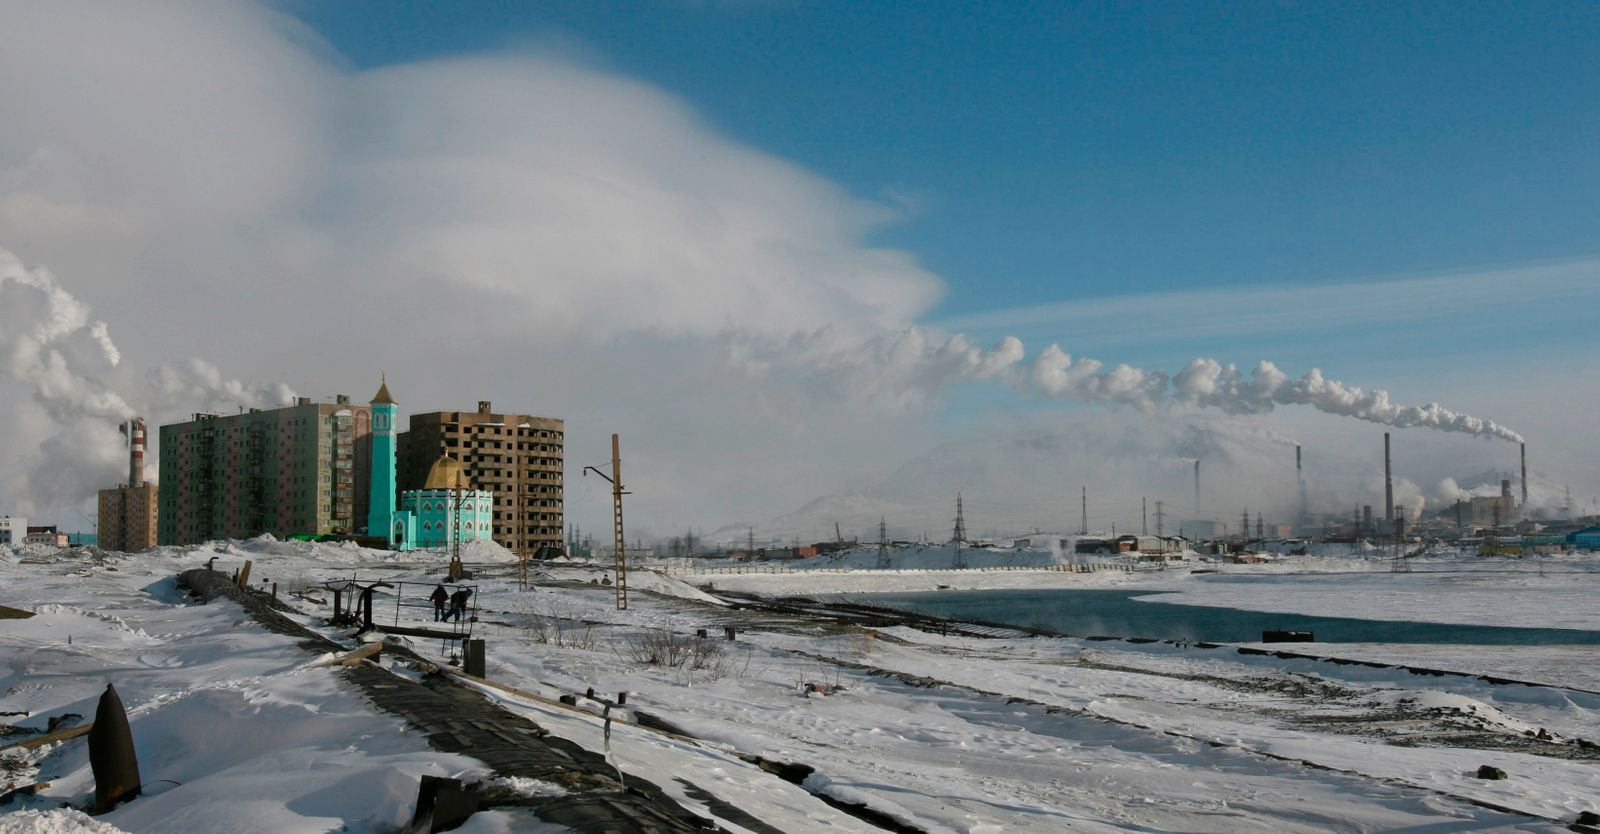 A general view shows the Nurd Kamal mosque, residential buildings and smelters in the arctic Russian city of Norilsk